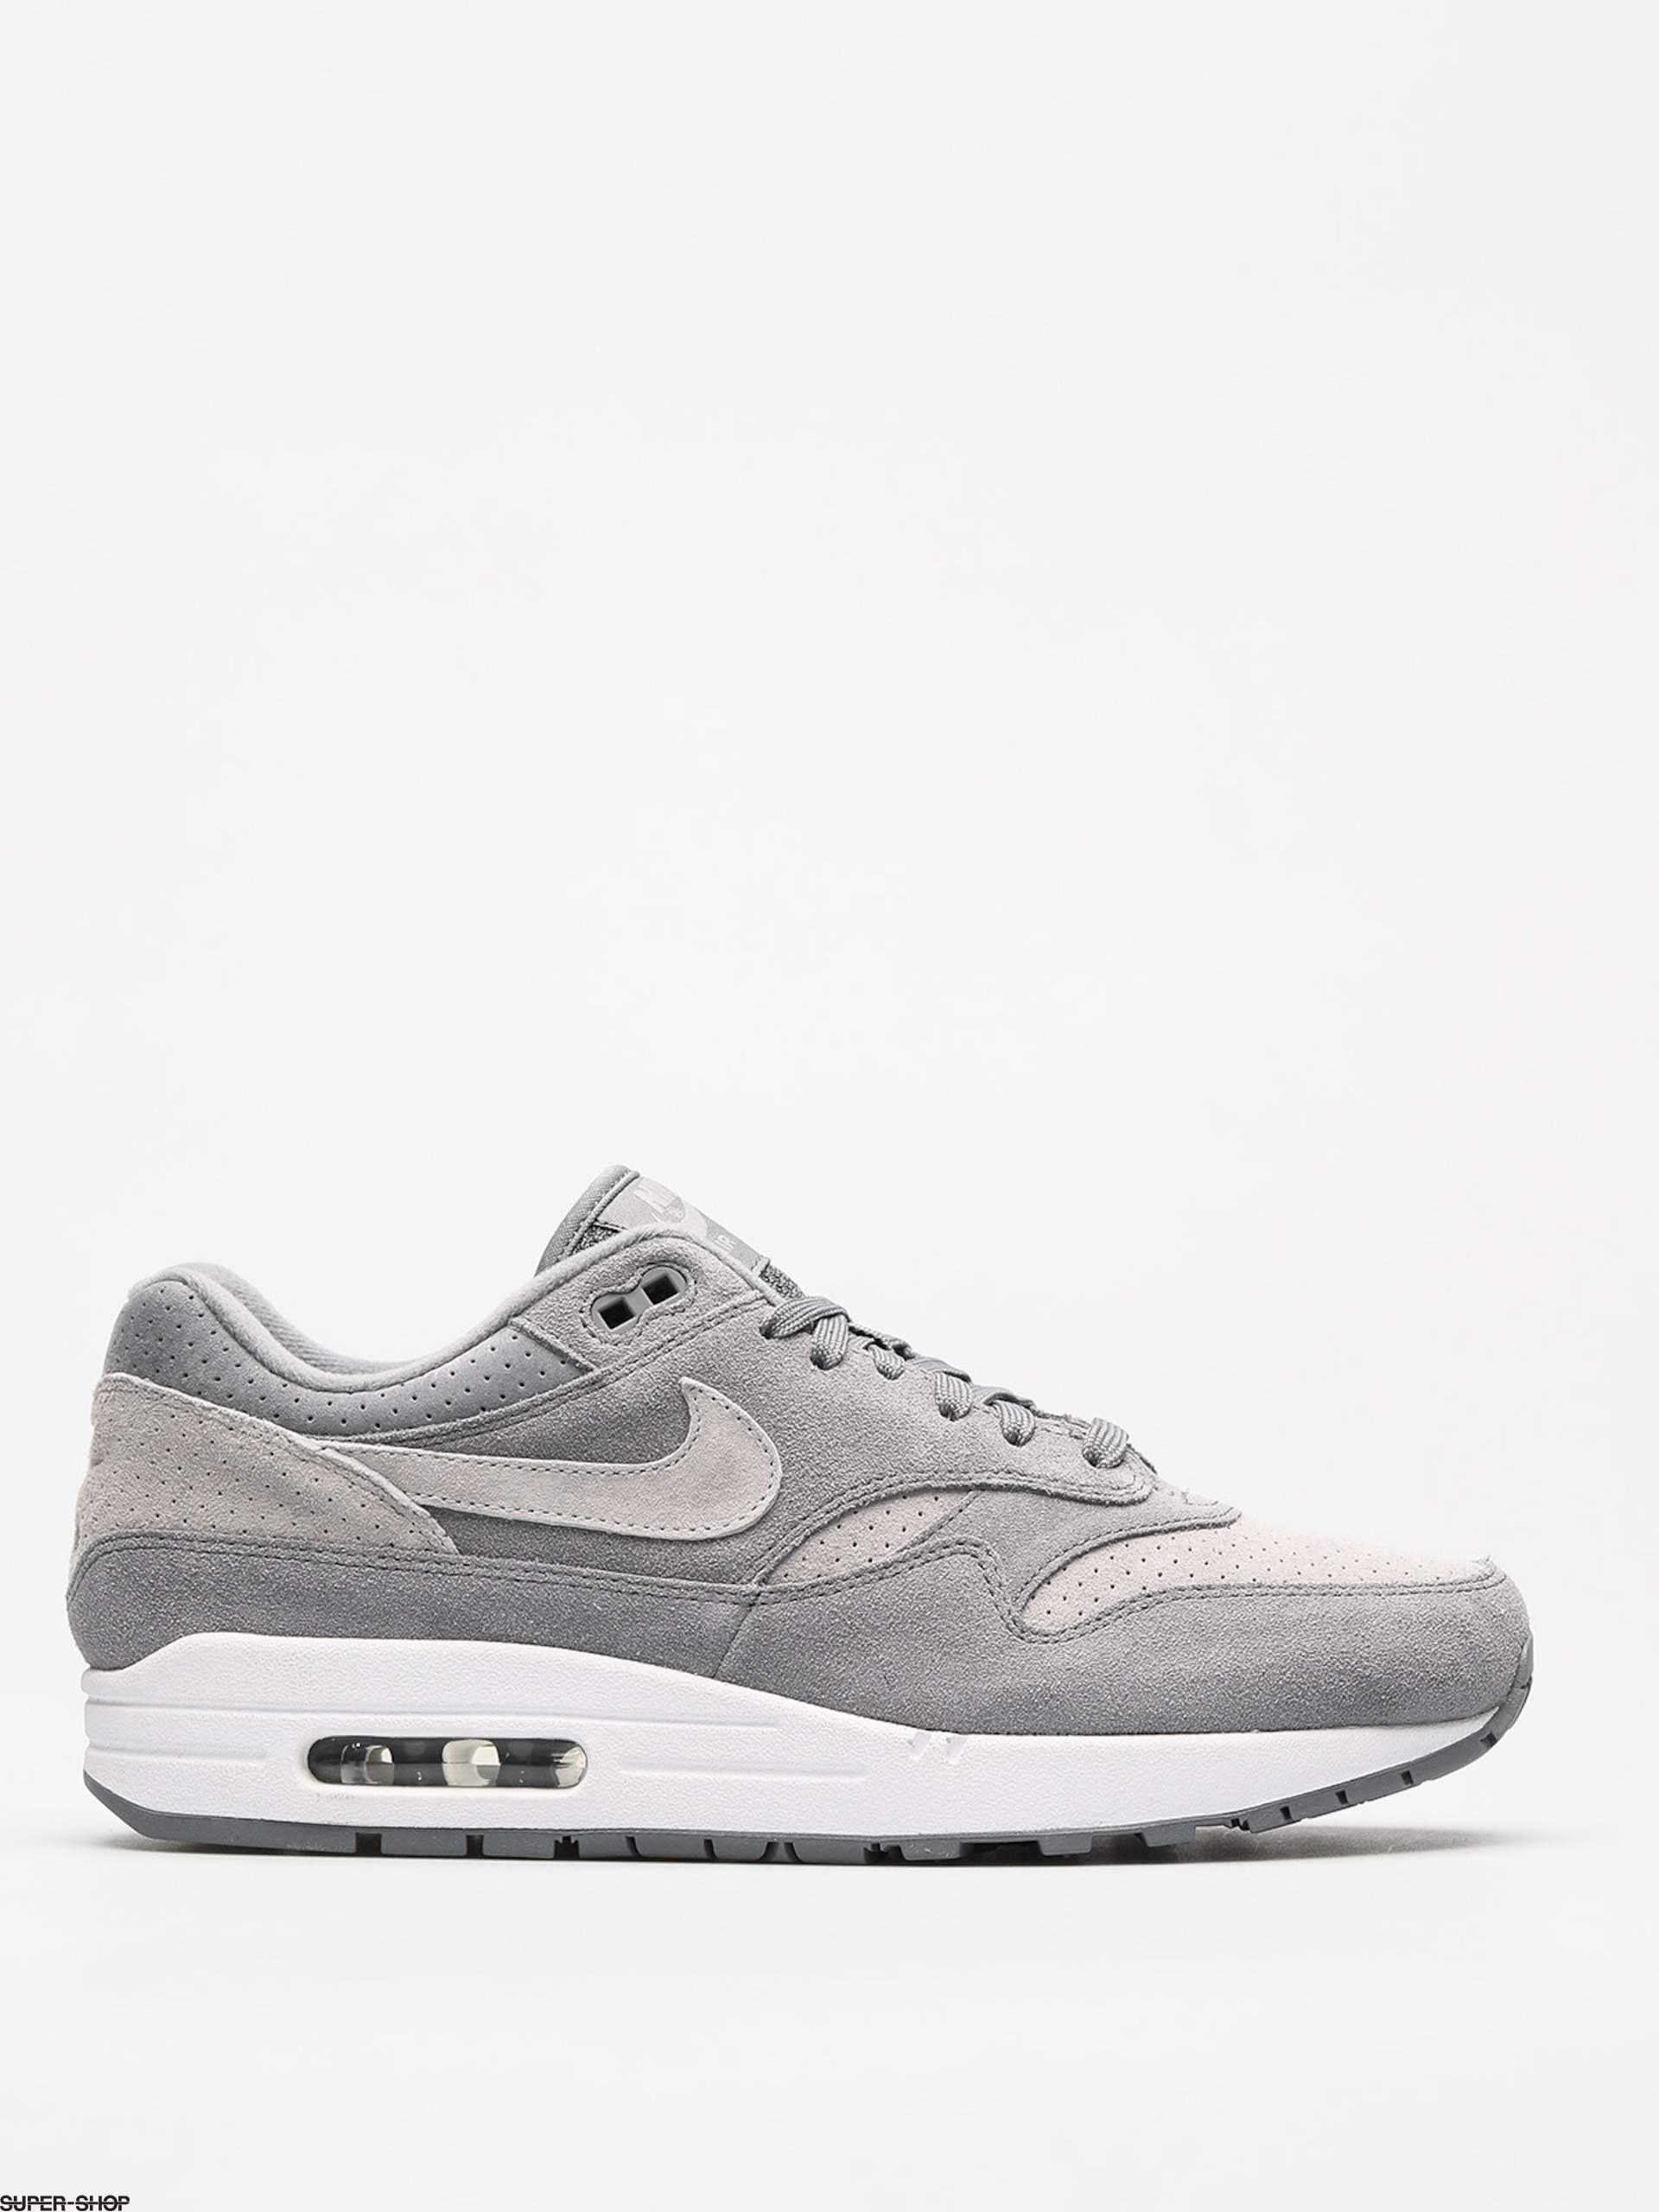 Nike Shoes Air Max 1 Premium (cool grey/wolf grey white)